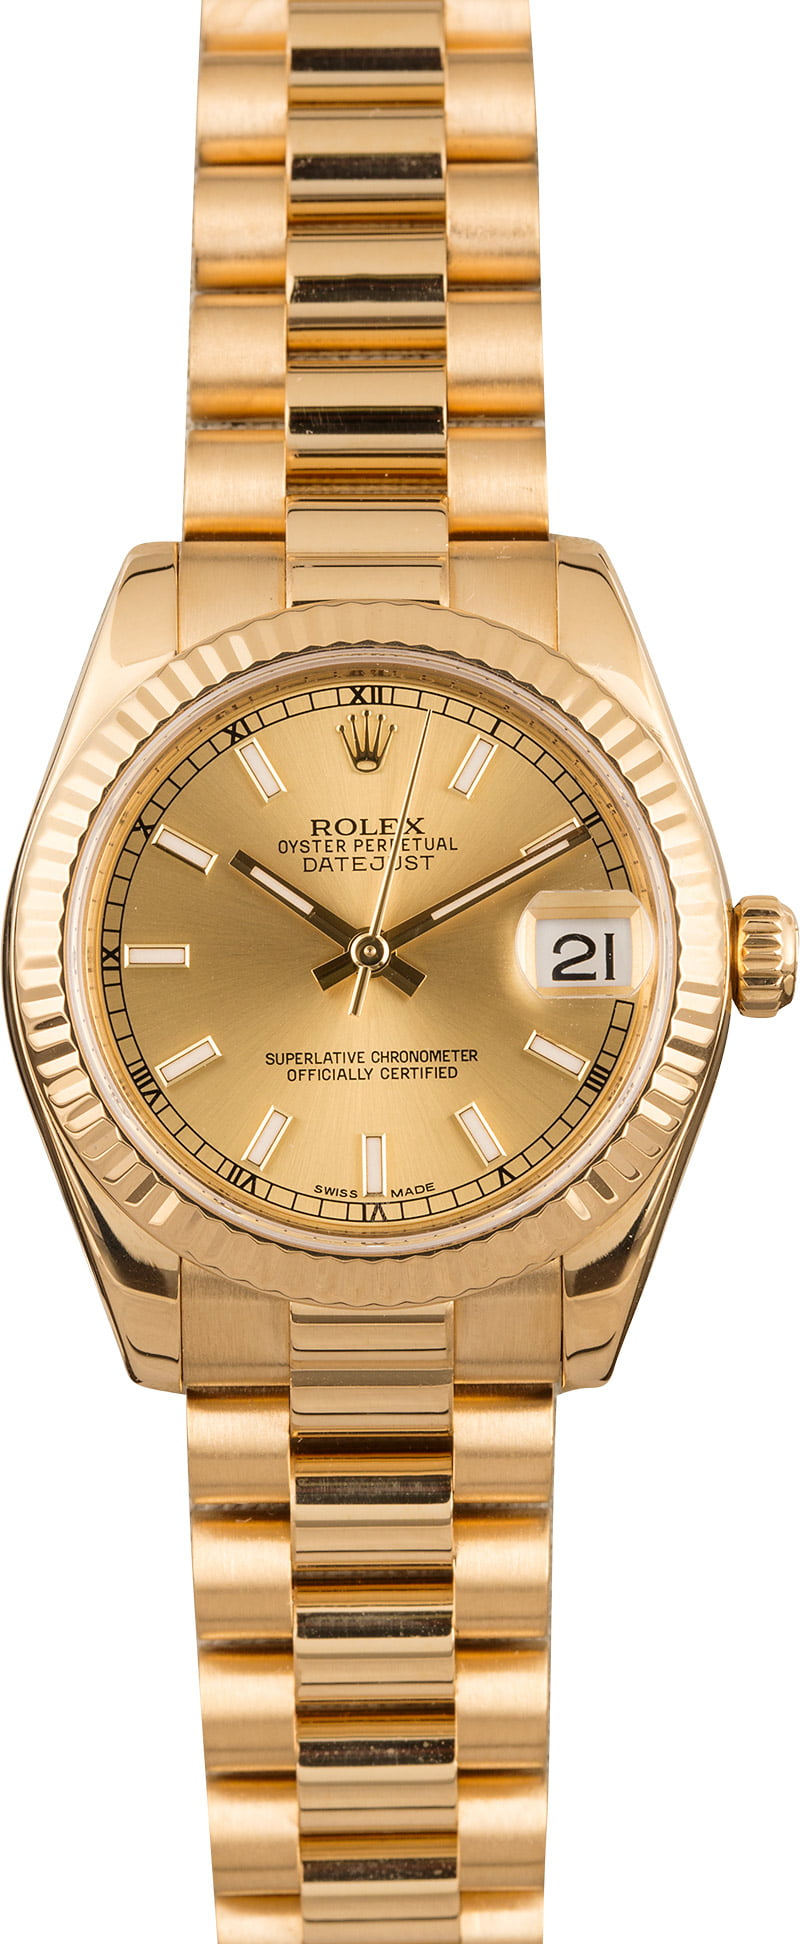 Sylvia Earle Rolex Lady President